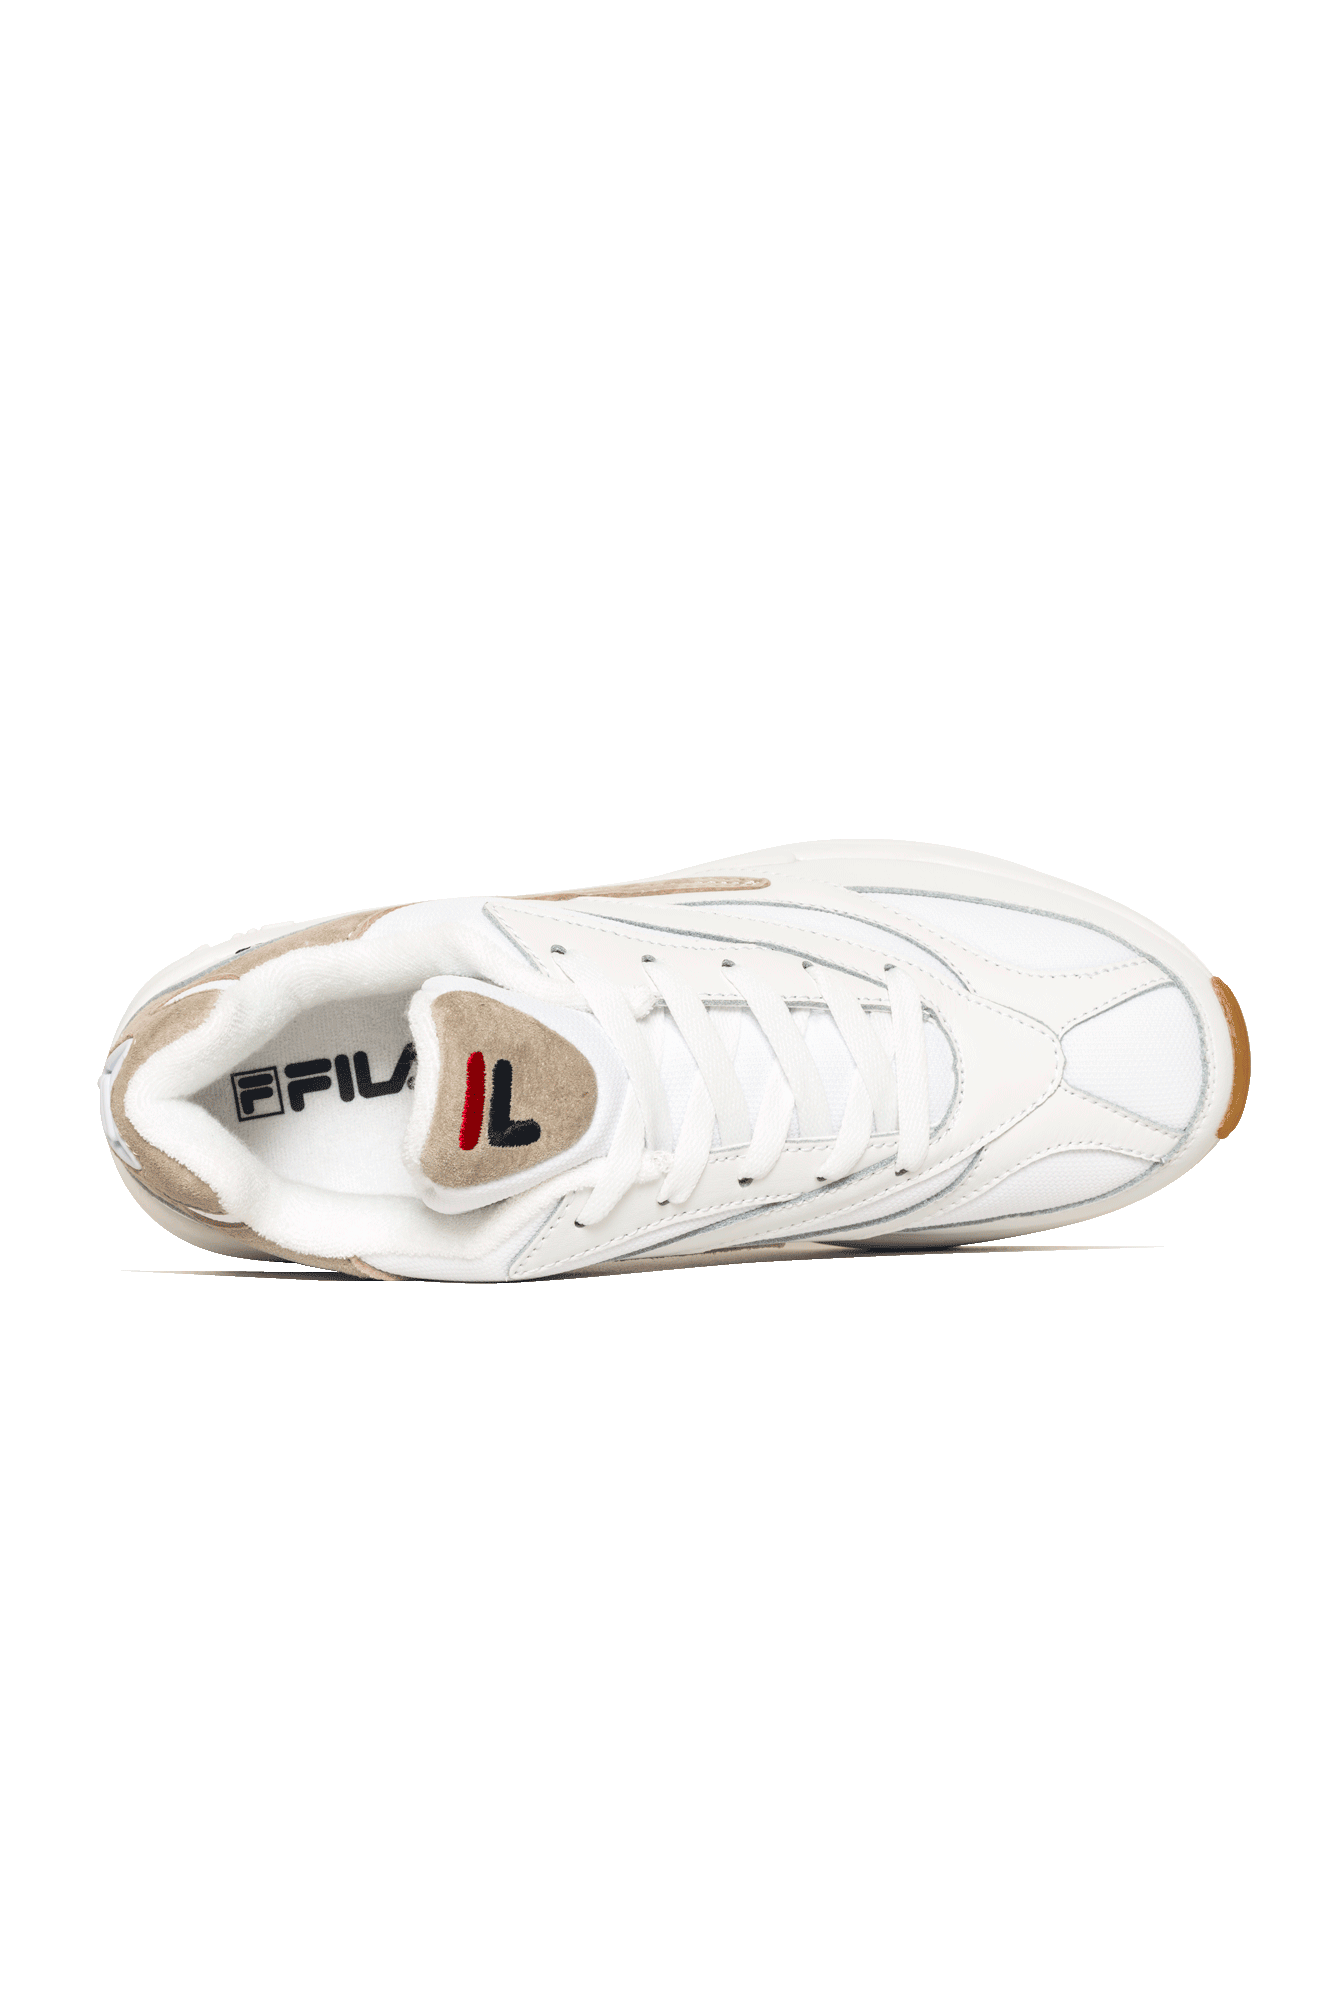 Fila Sneakers Venom Low Bianco 1010255#000#C0006#8 - One Block Down